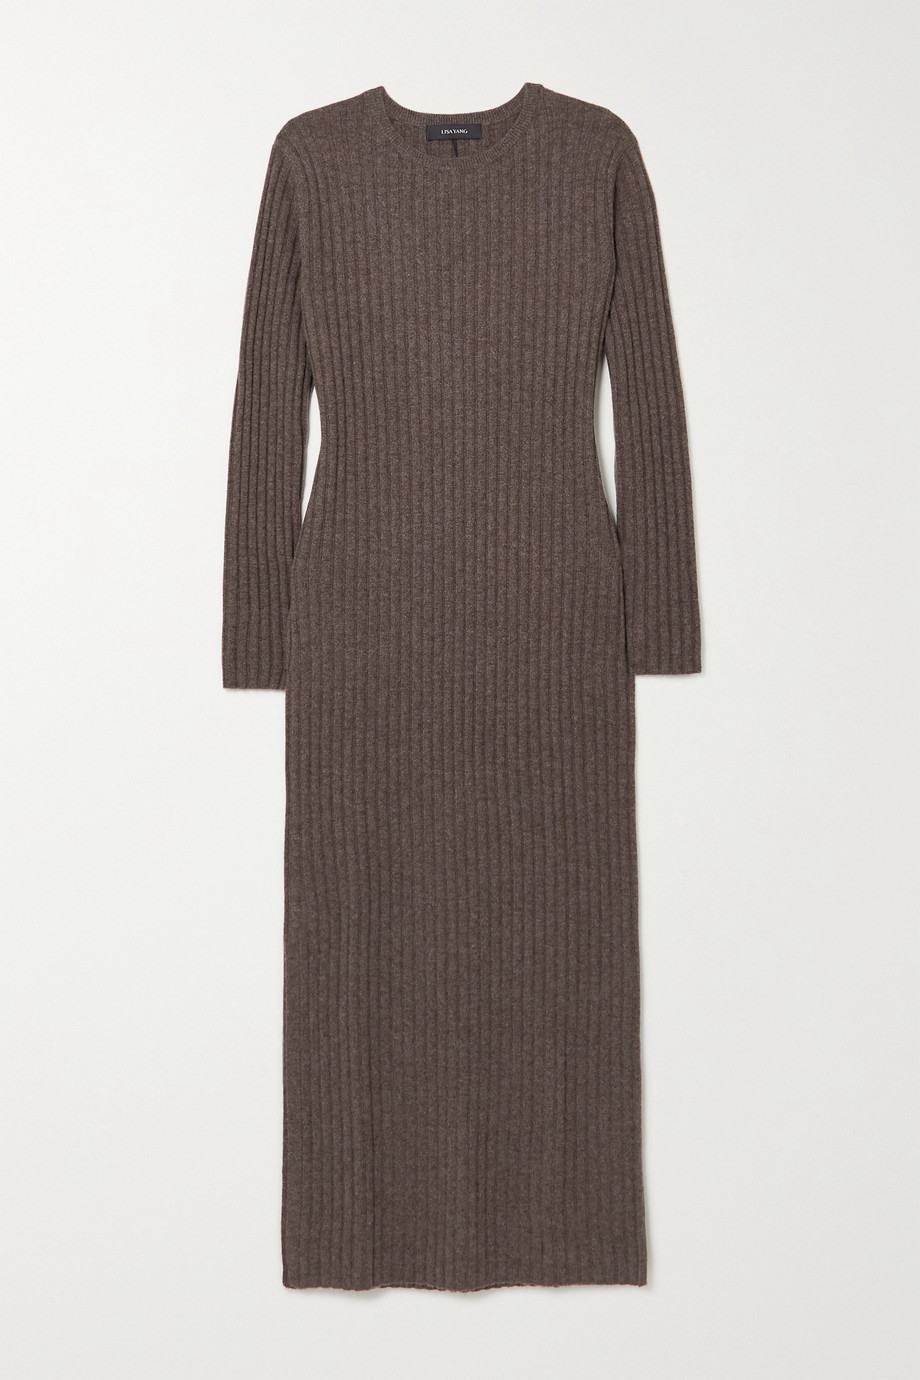 Lisa Yang Rita ribbed cashmere midi dress